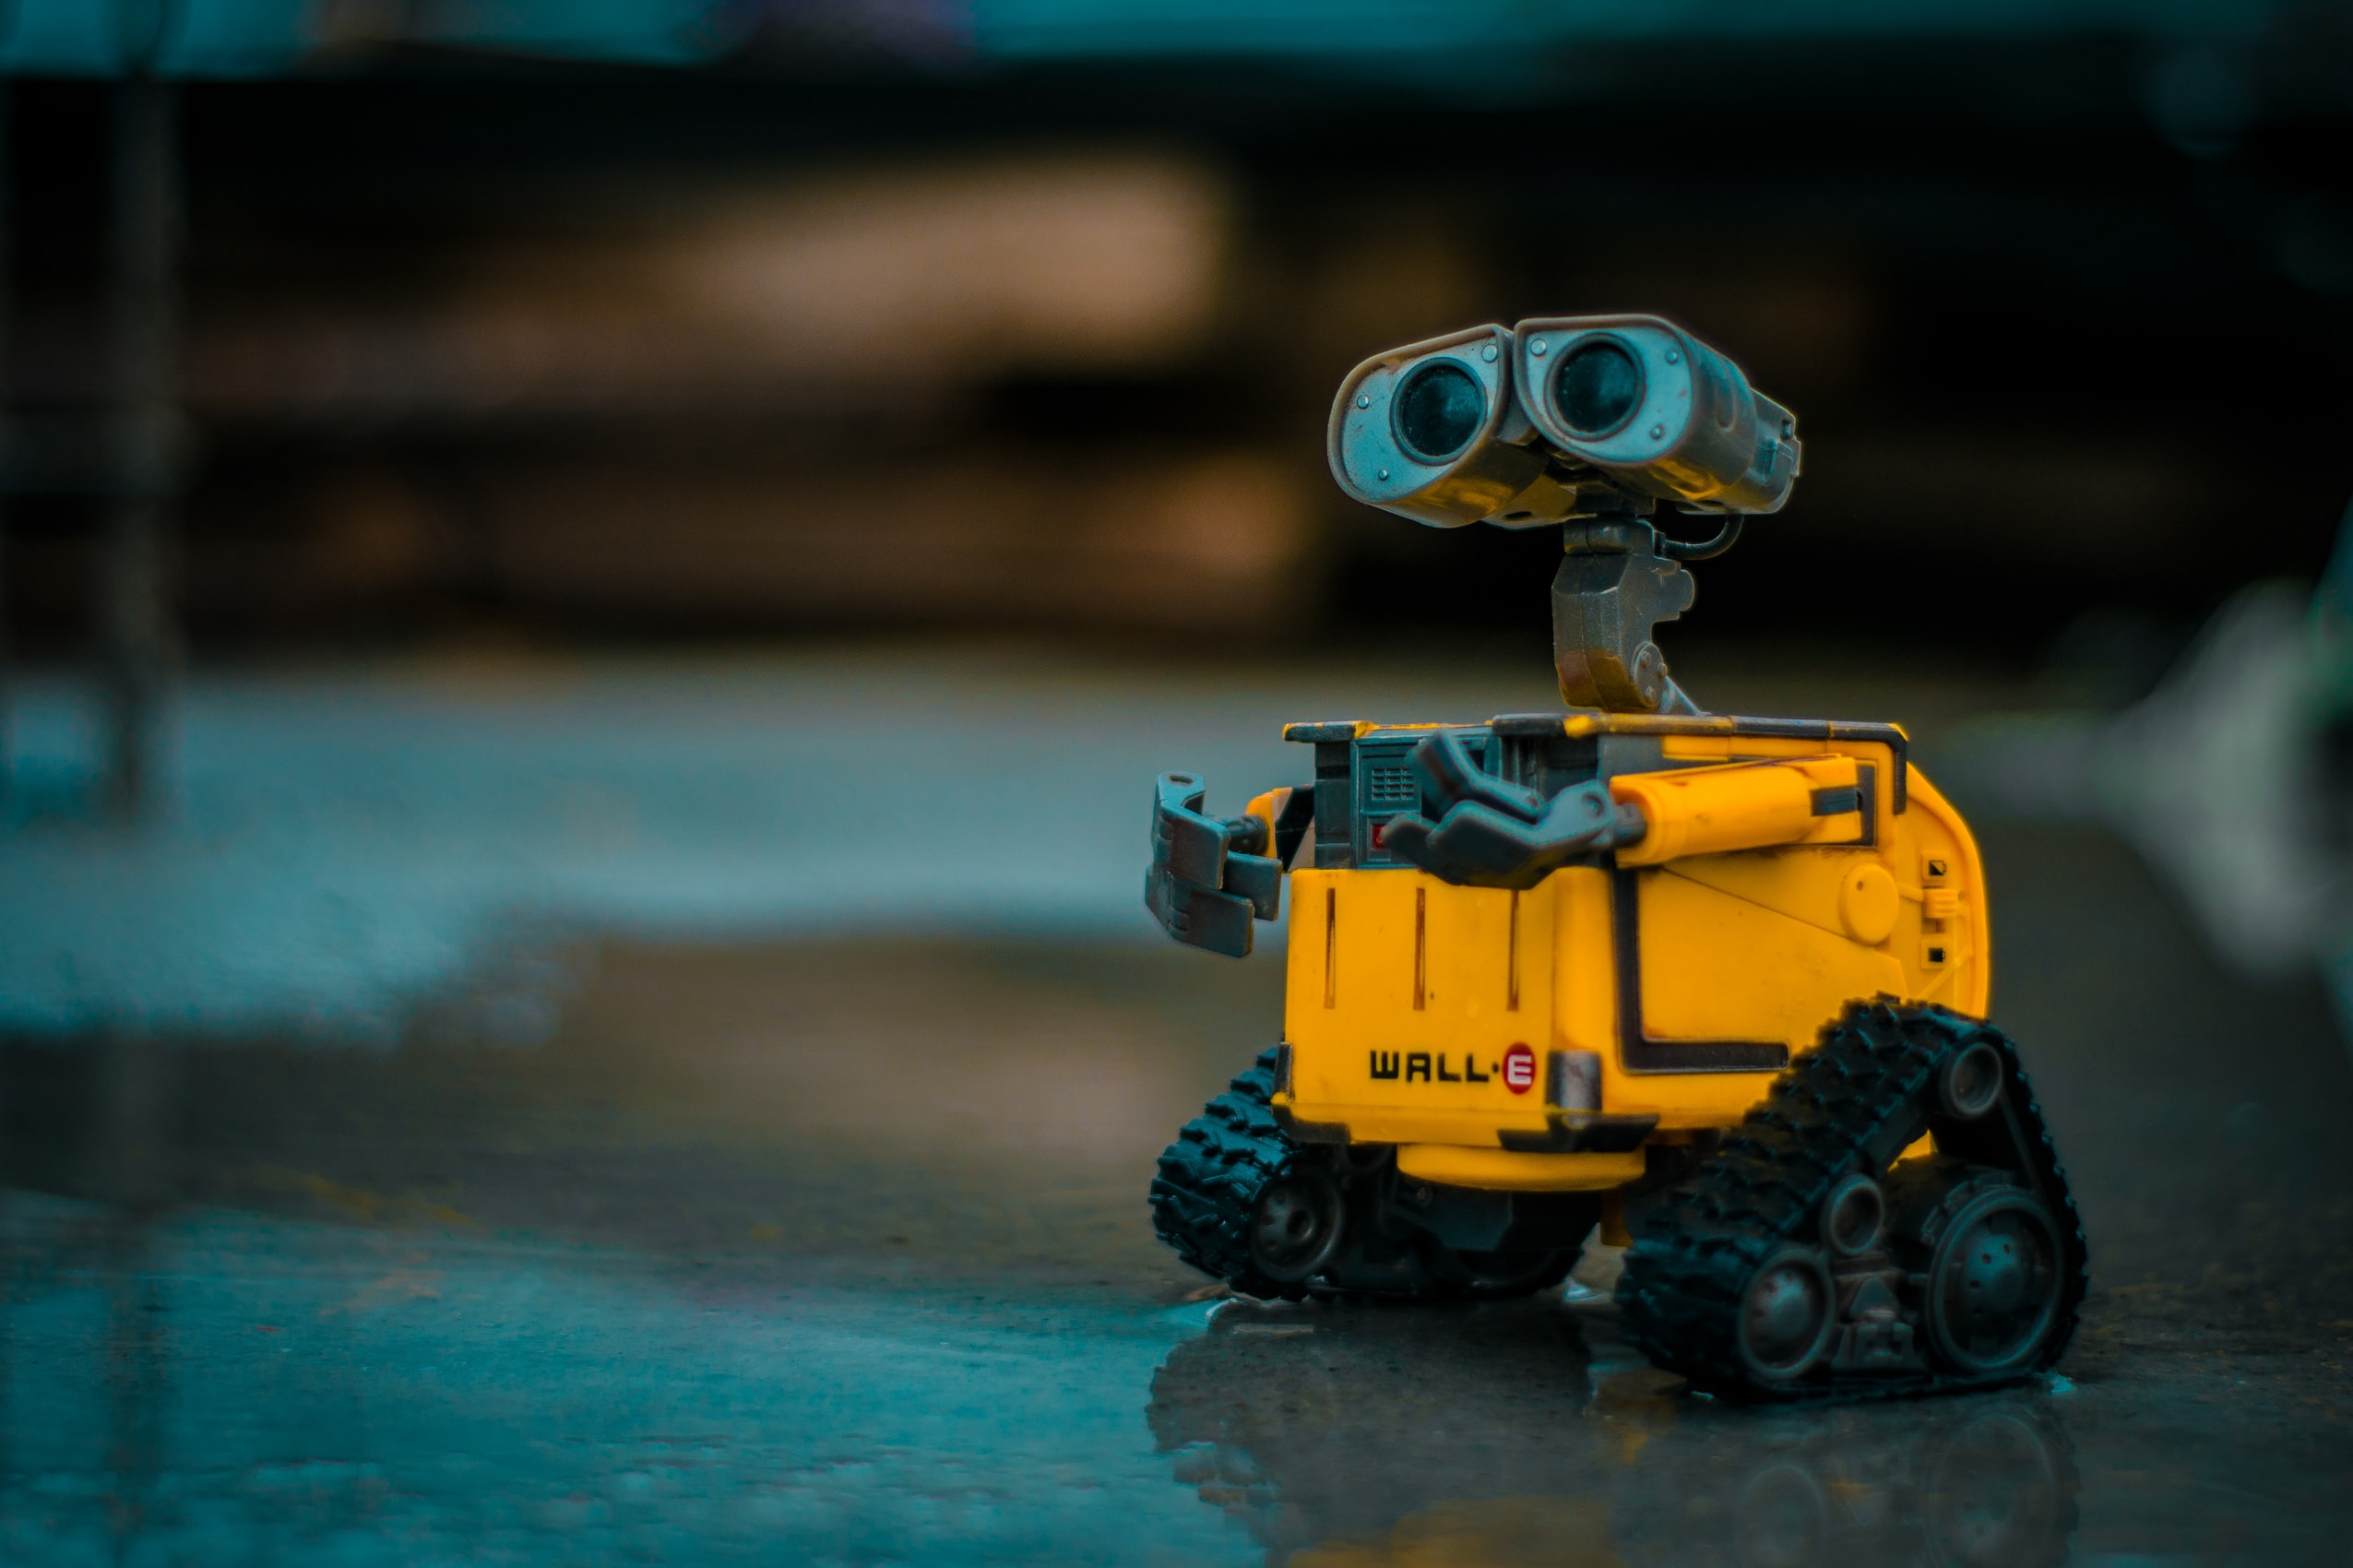 Wall-e photo by Lenin Estrada